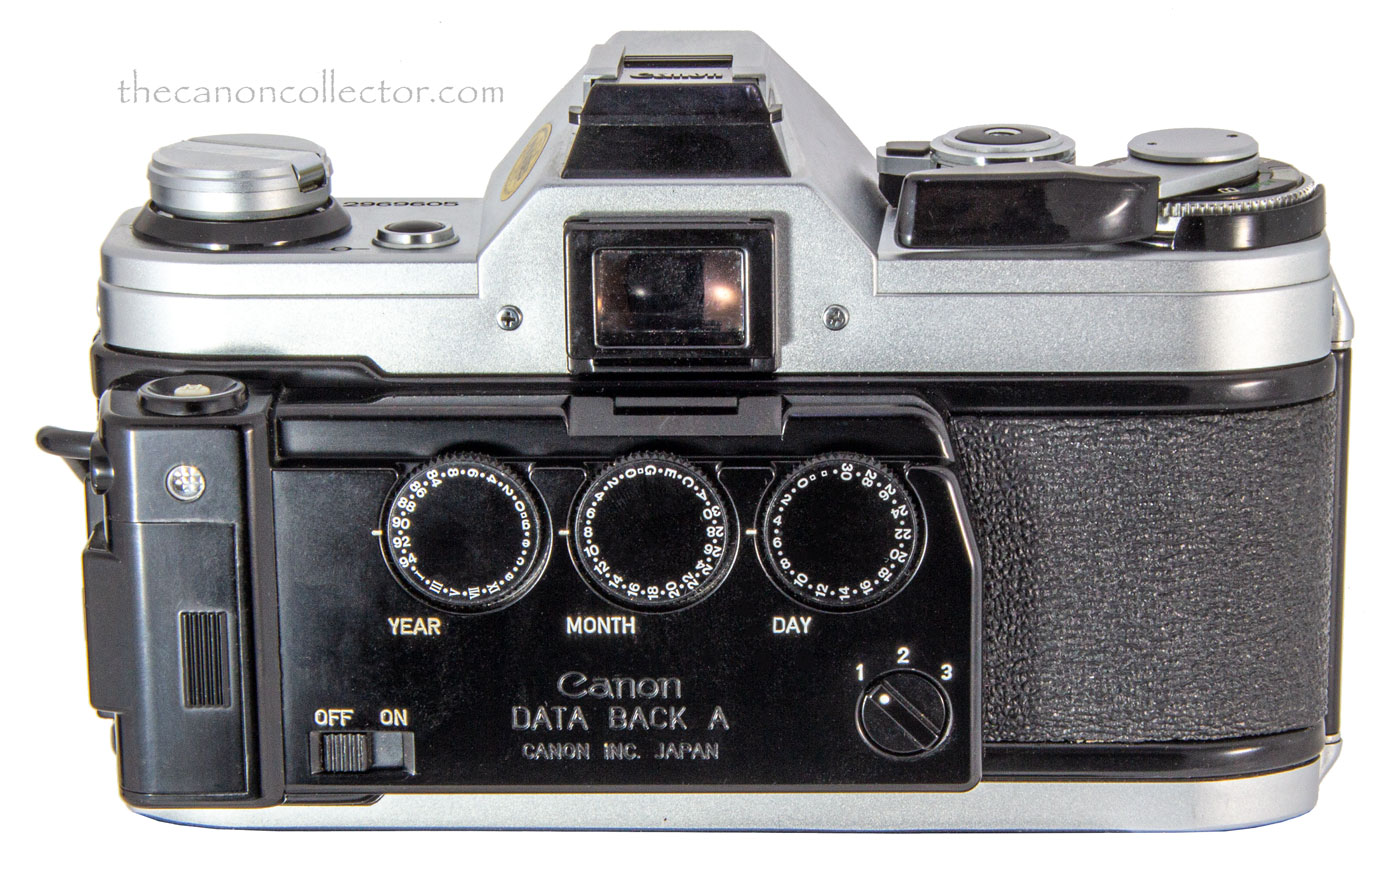 Canon Databack A